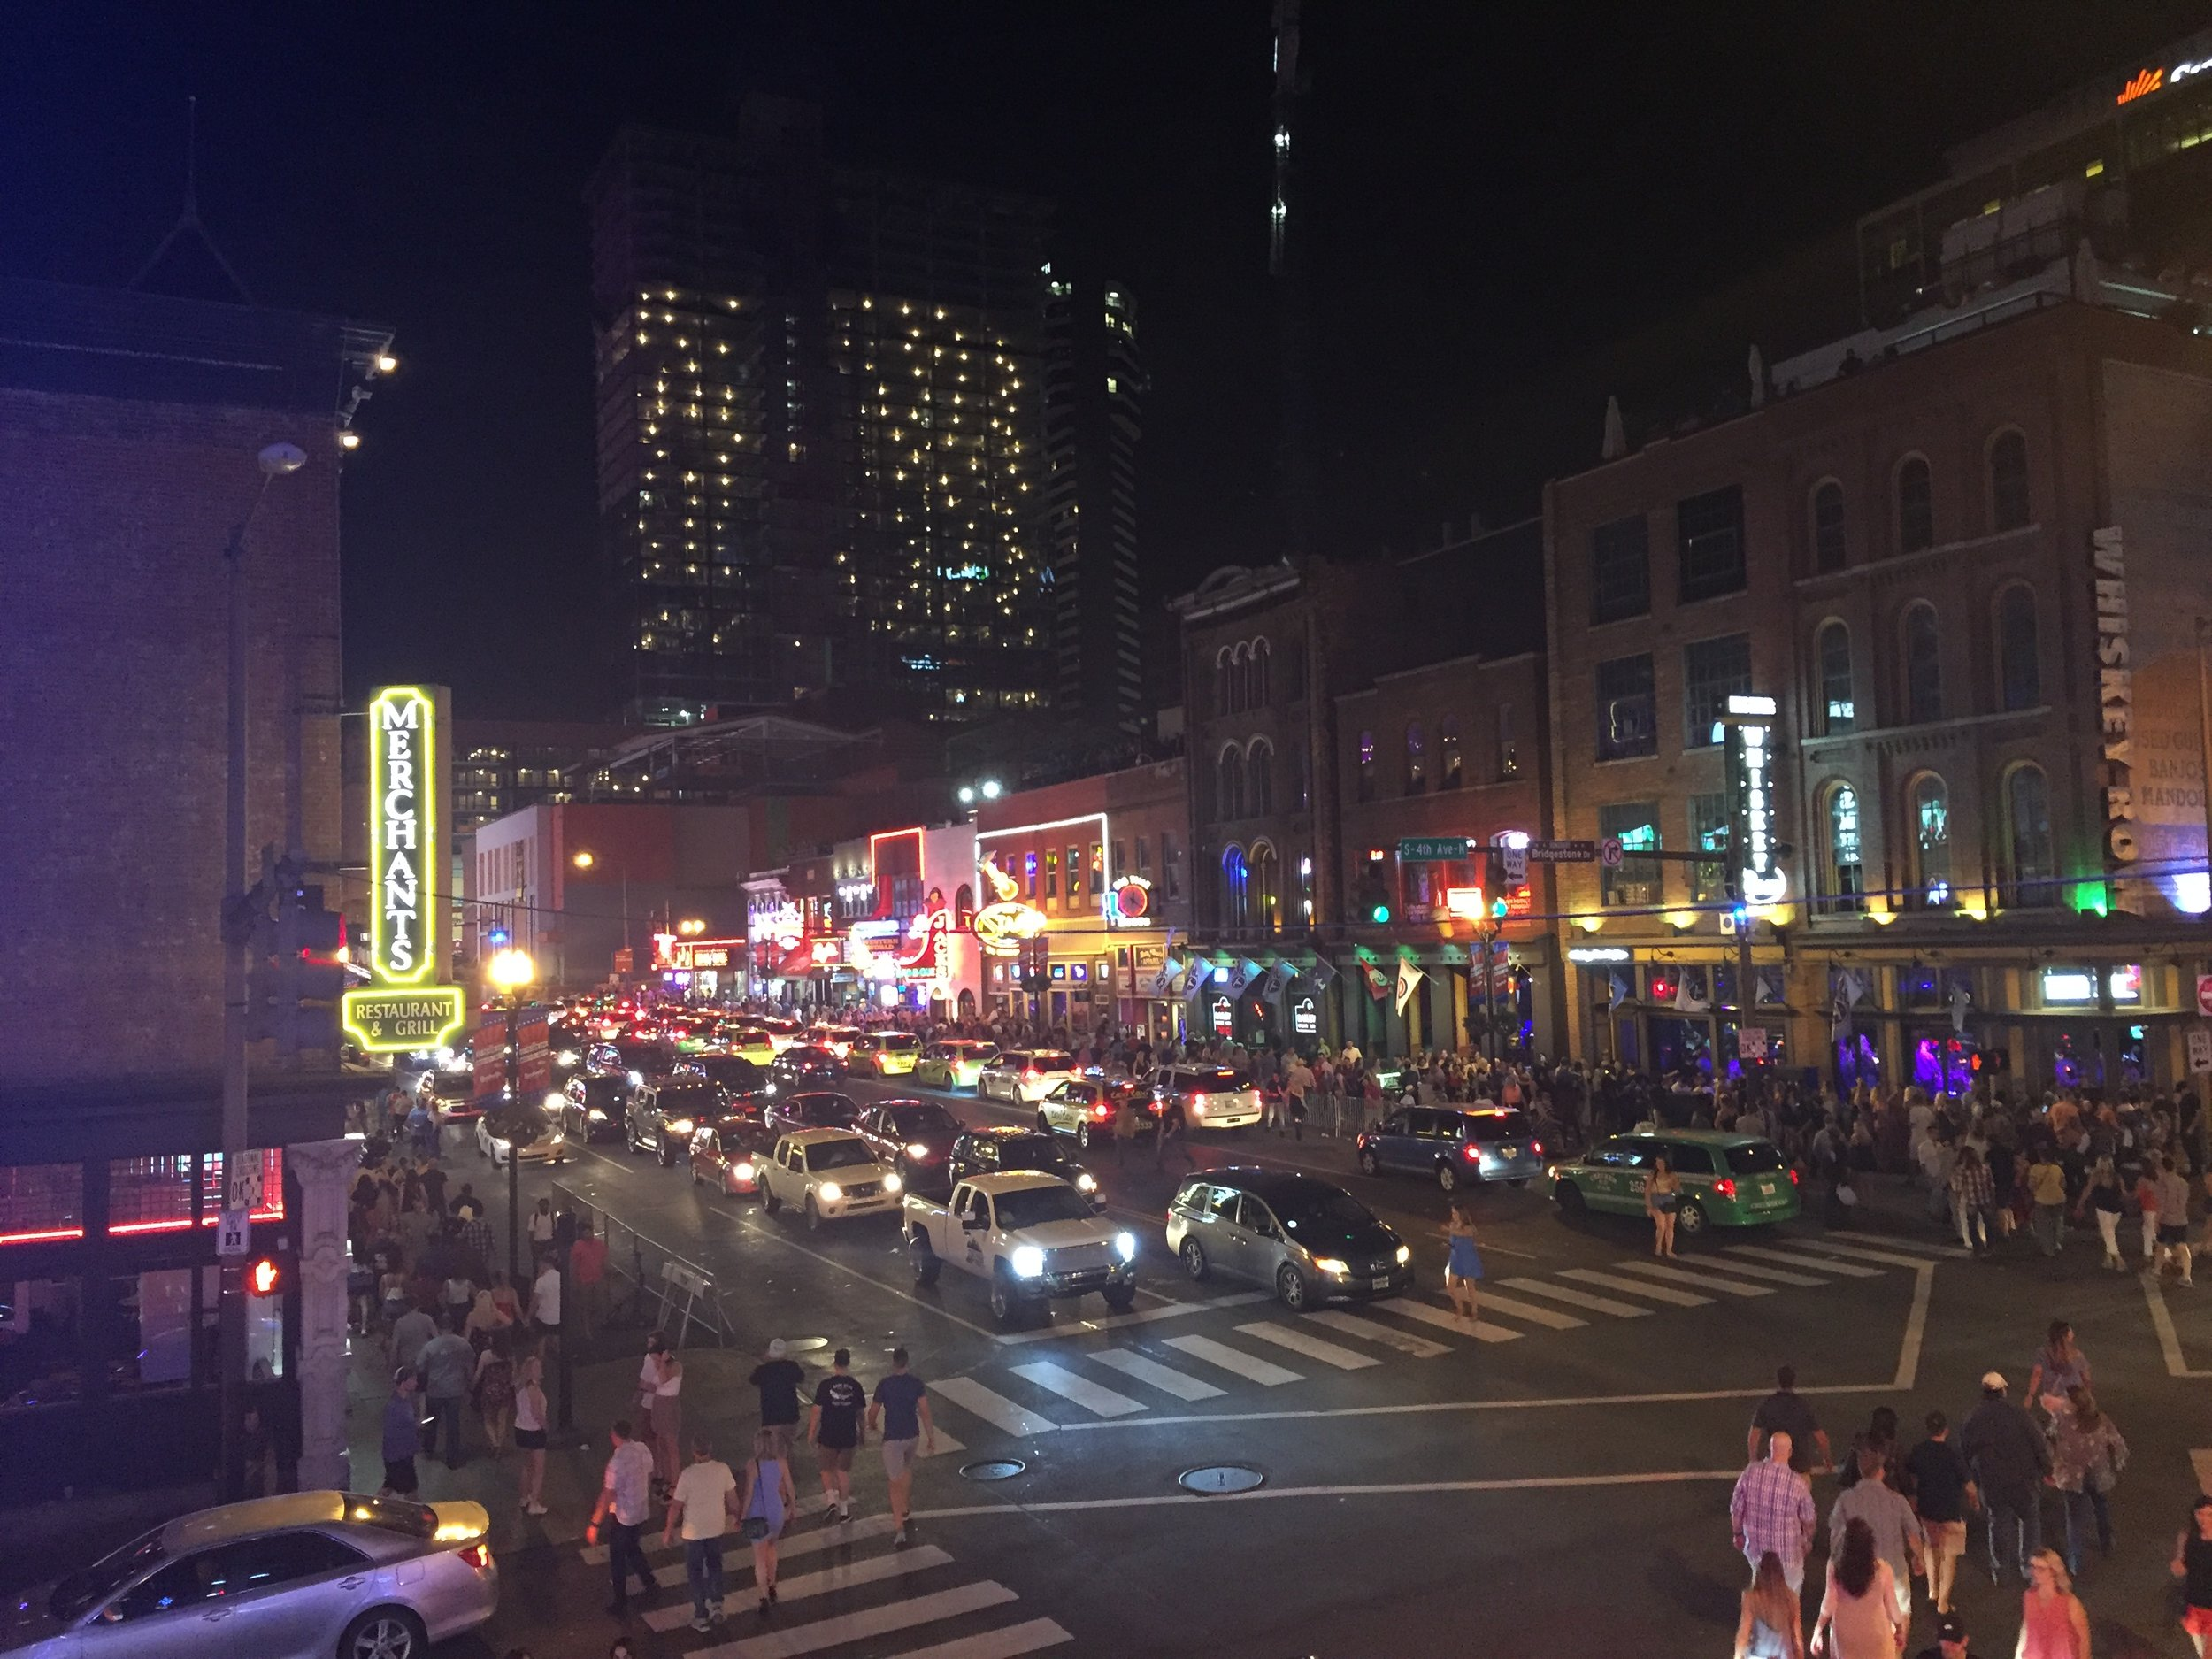 image description: The Nashvegas Strip at night when all the signs are lit up in neon. There's bumper to bumper traffic and the sidewalks are crowded with people.